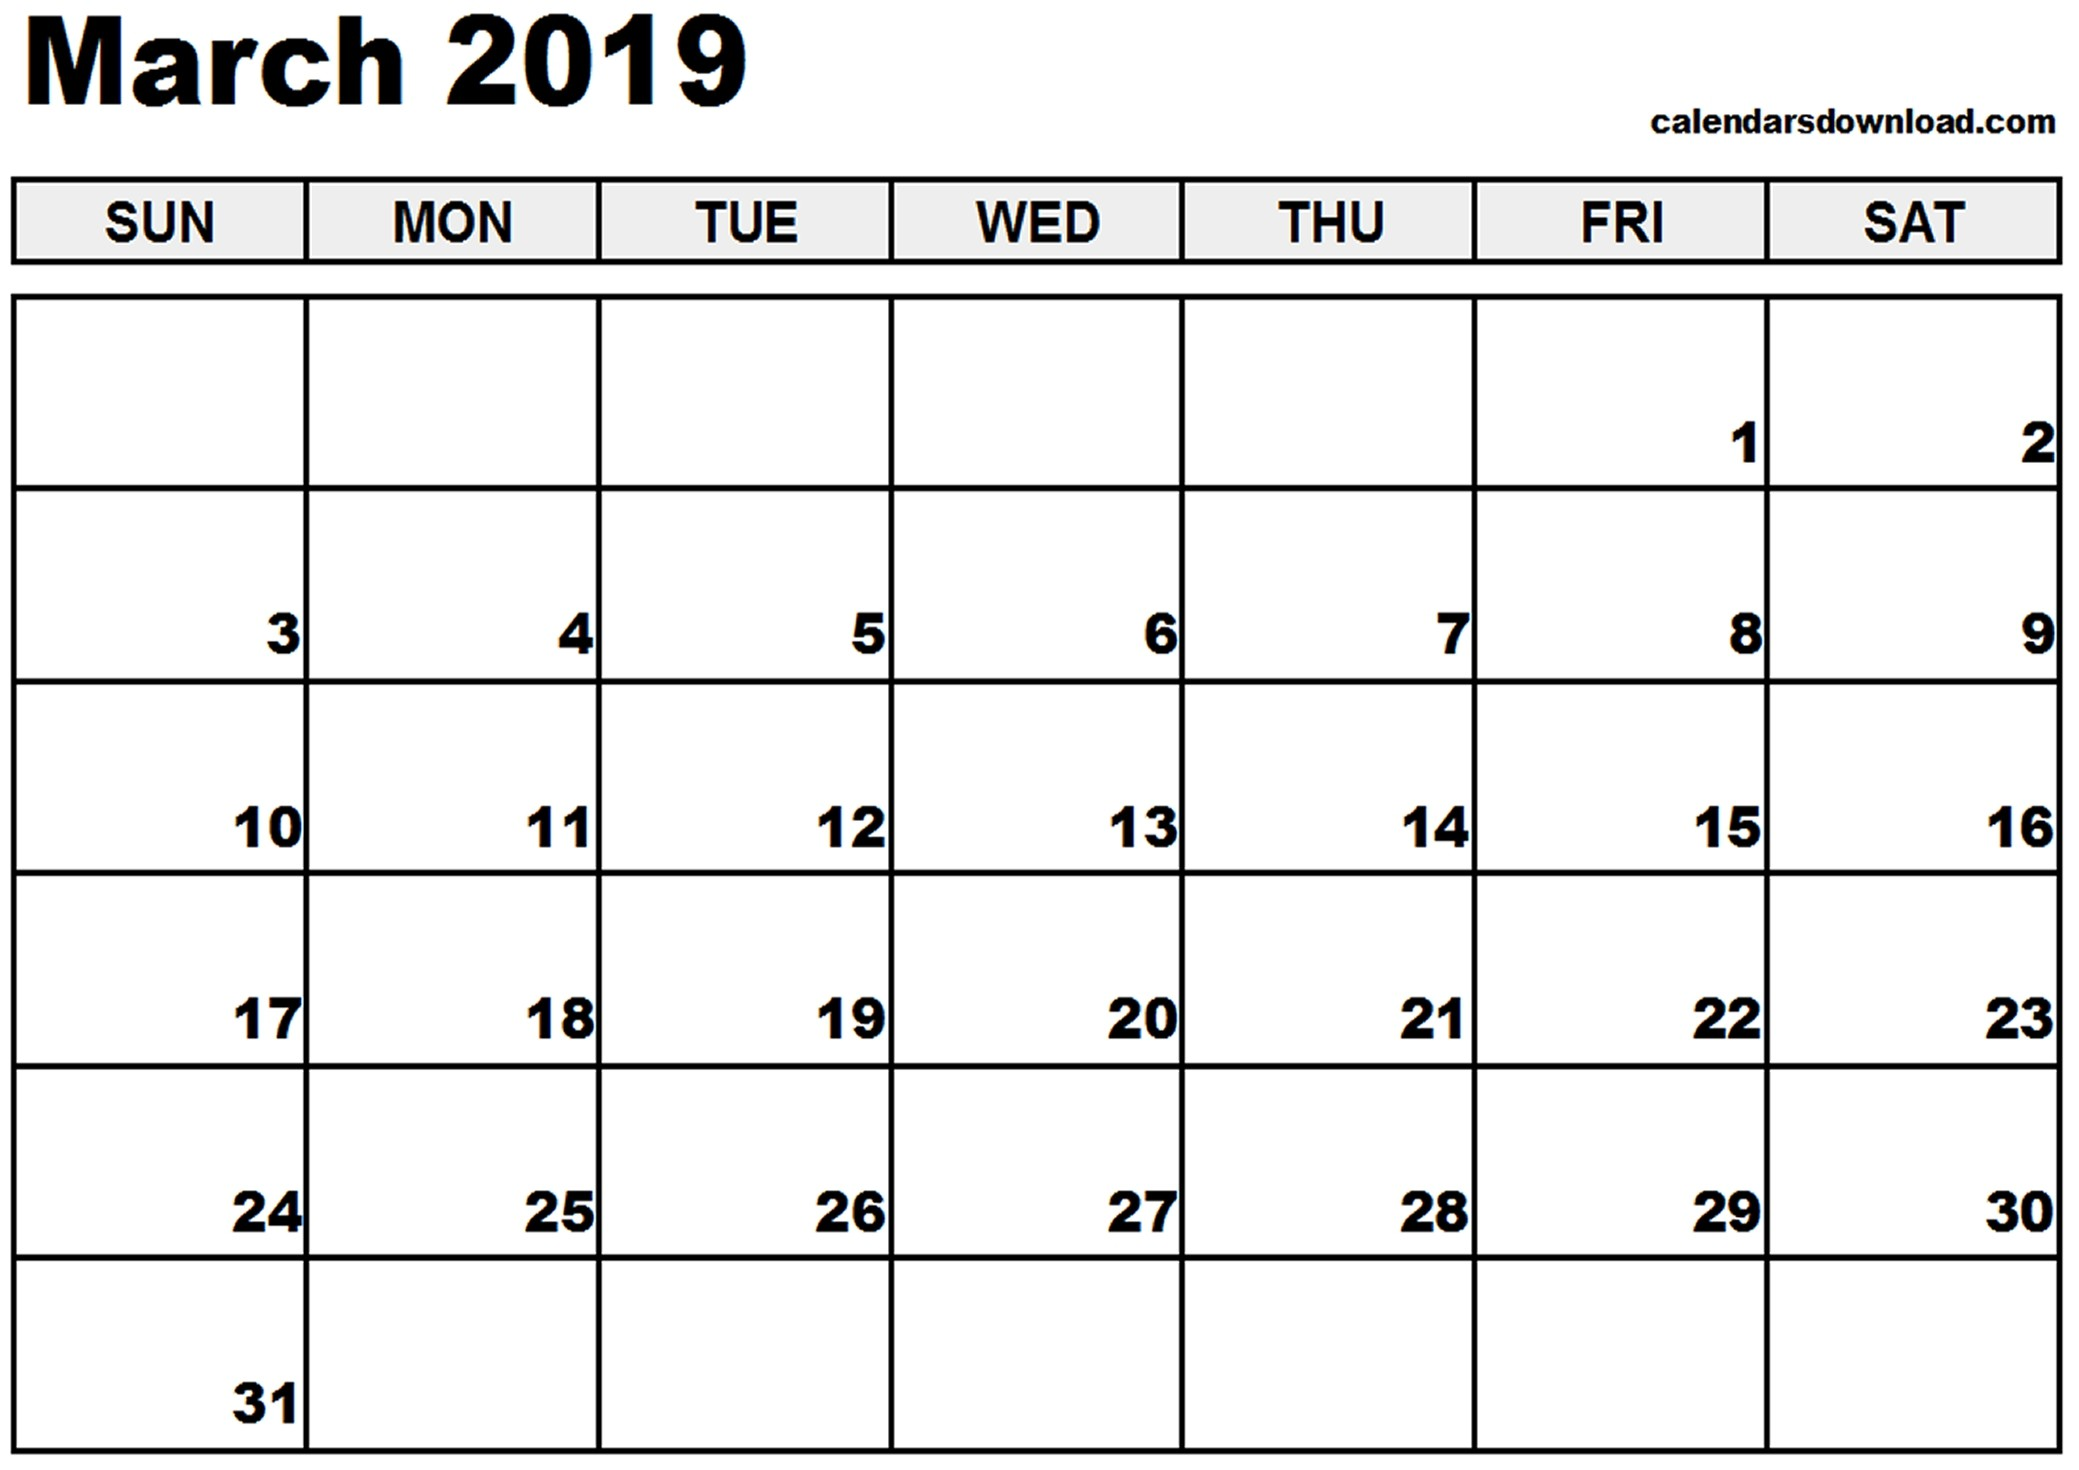 March Calendar 2019 Más Populares March 2019 Calendar Pdf Word Excel Of March Calendar 2019 Más Actual Odia Calendar 2019 with March Odishain